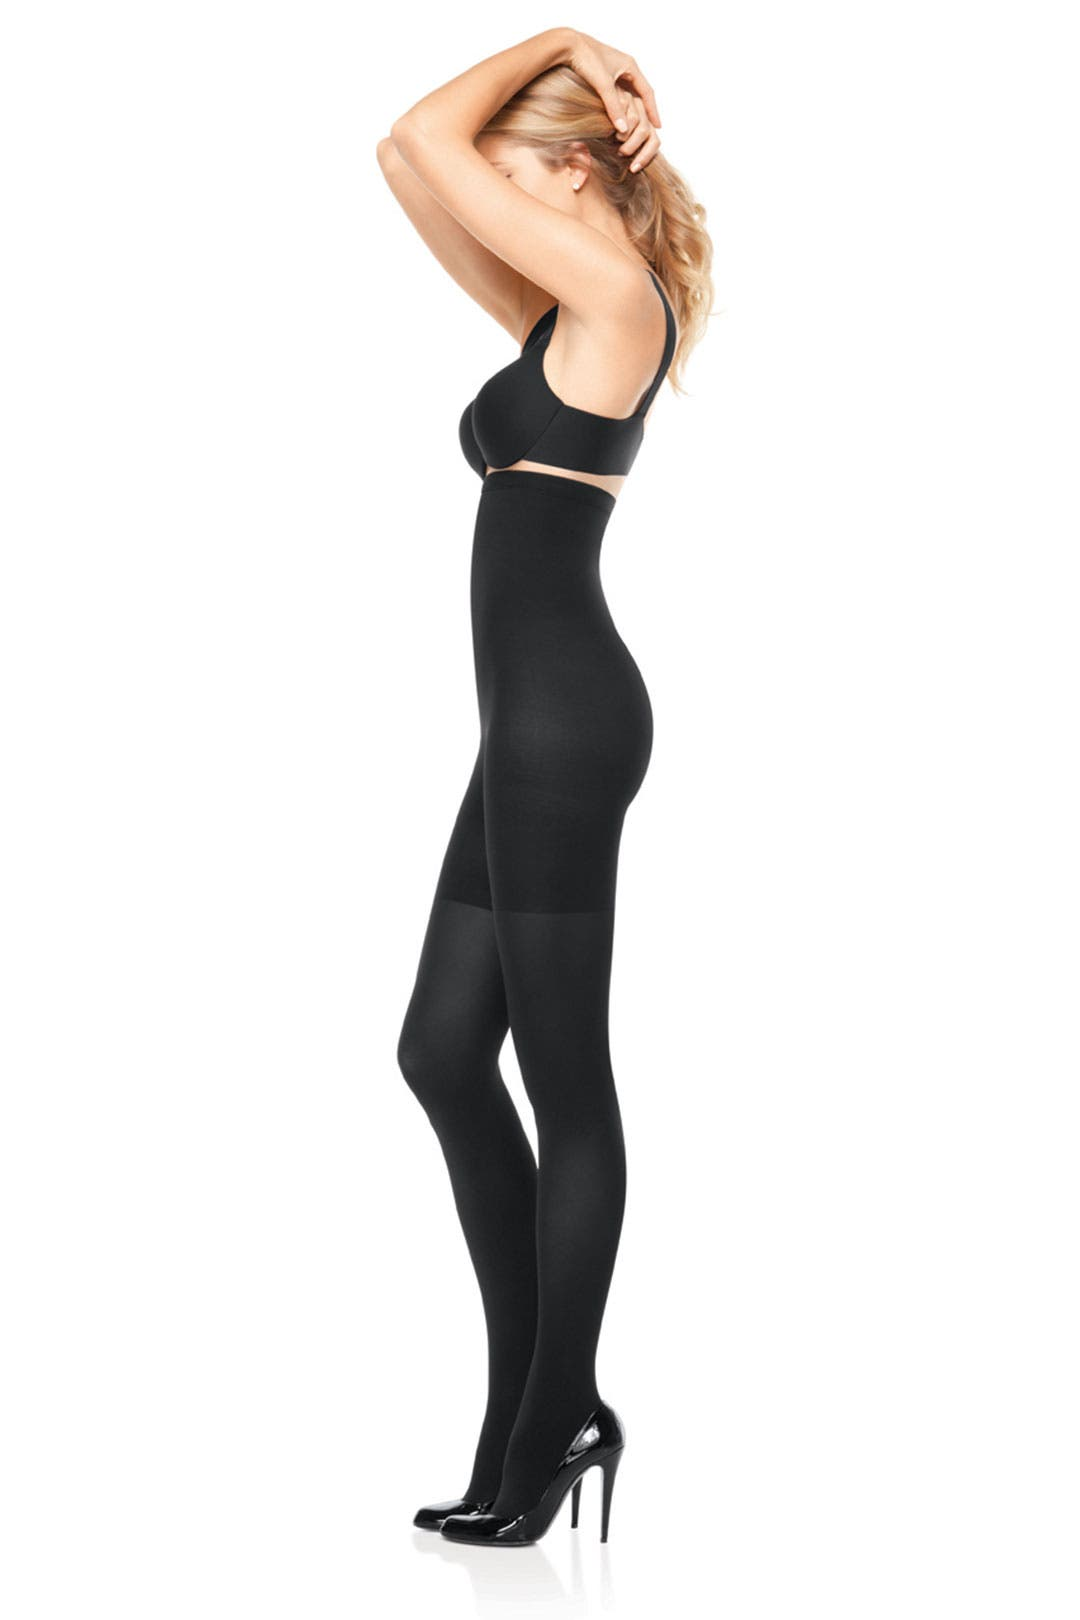 Black High Waisted Tight End Tights by Spanx